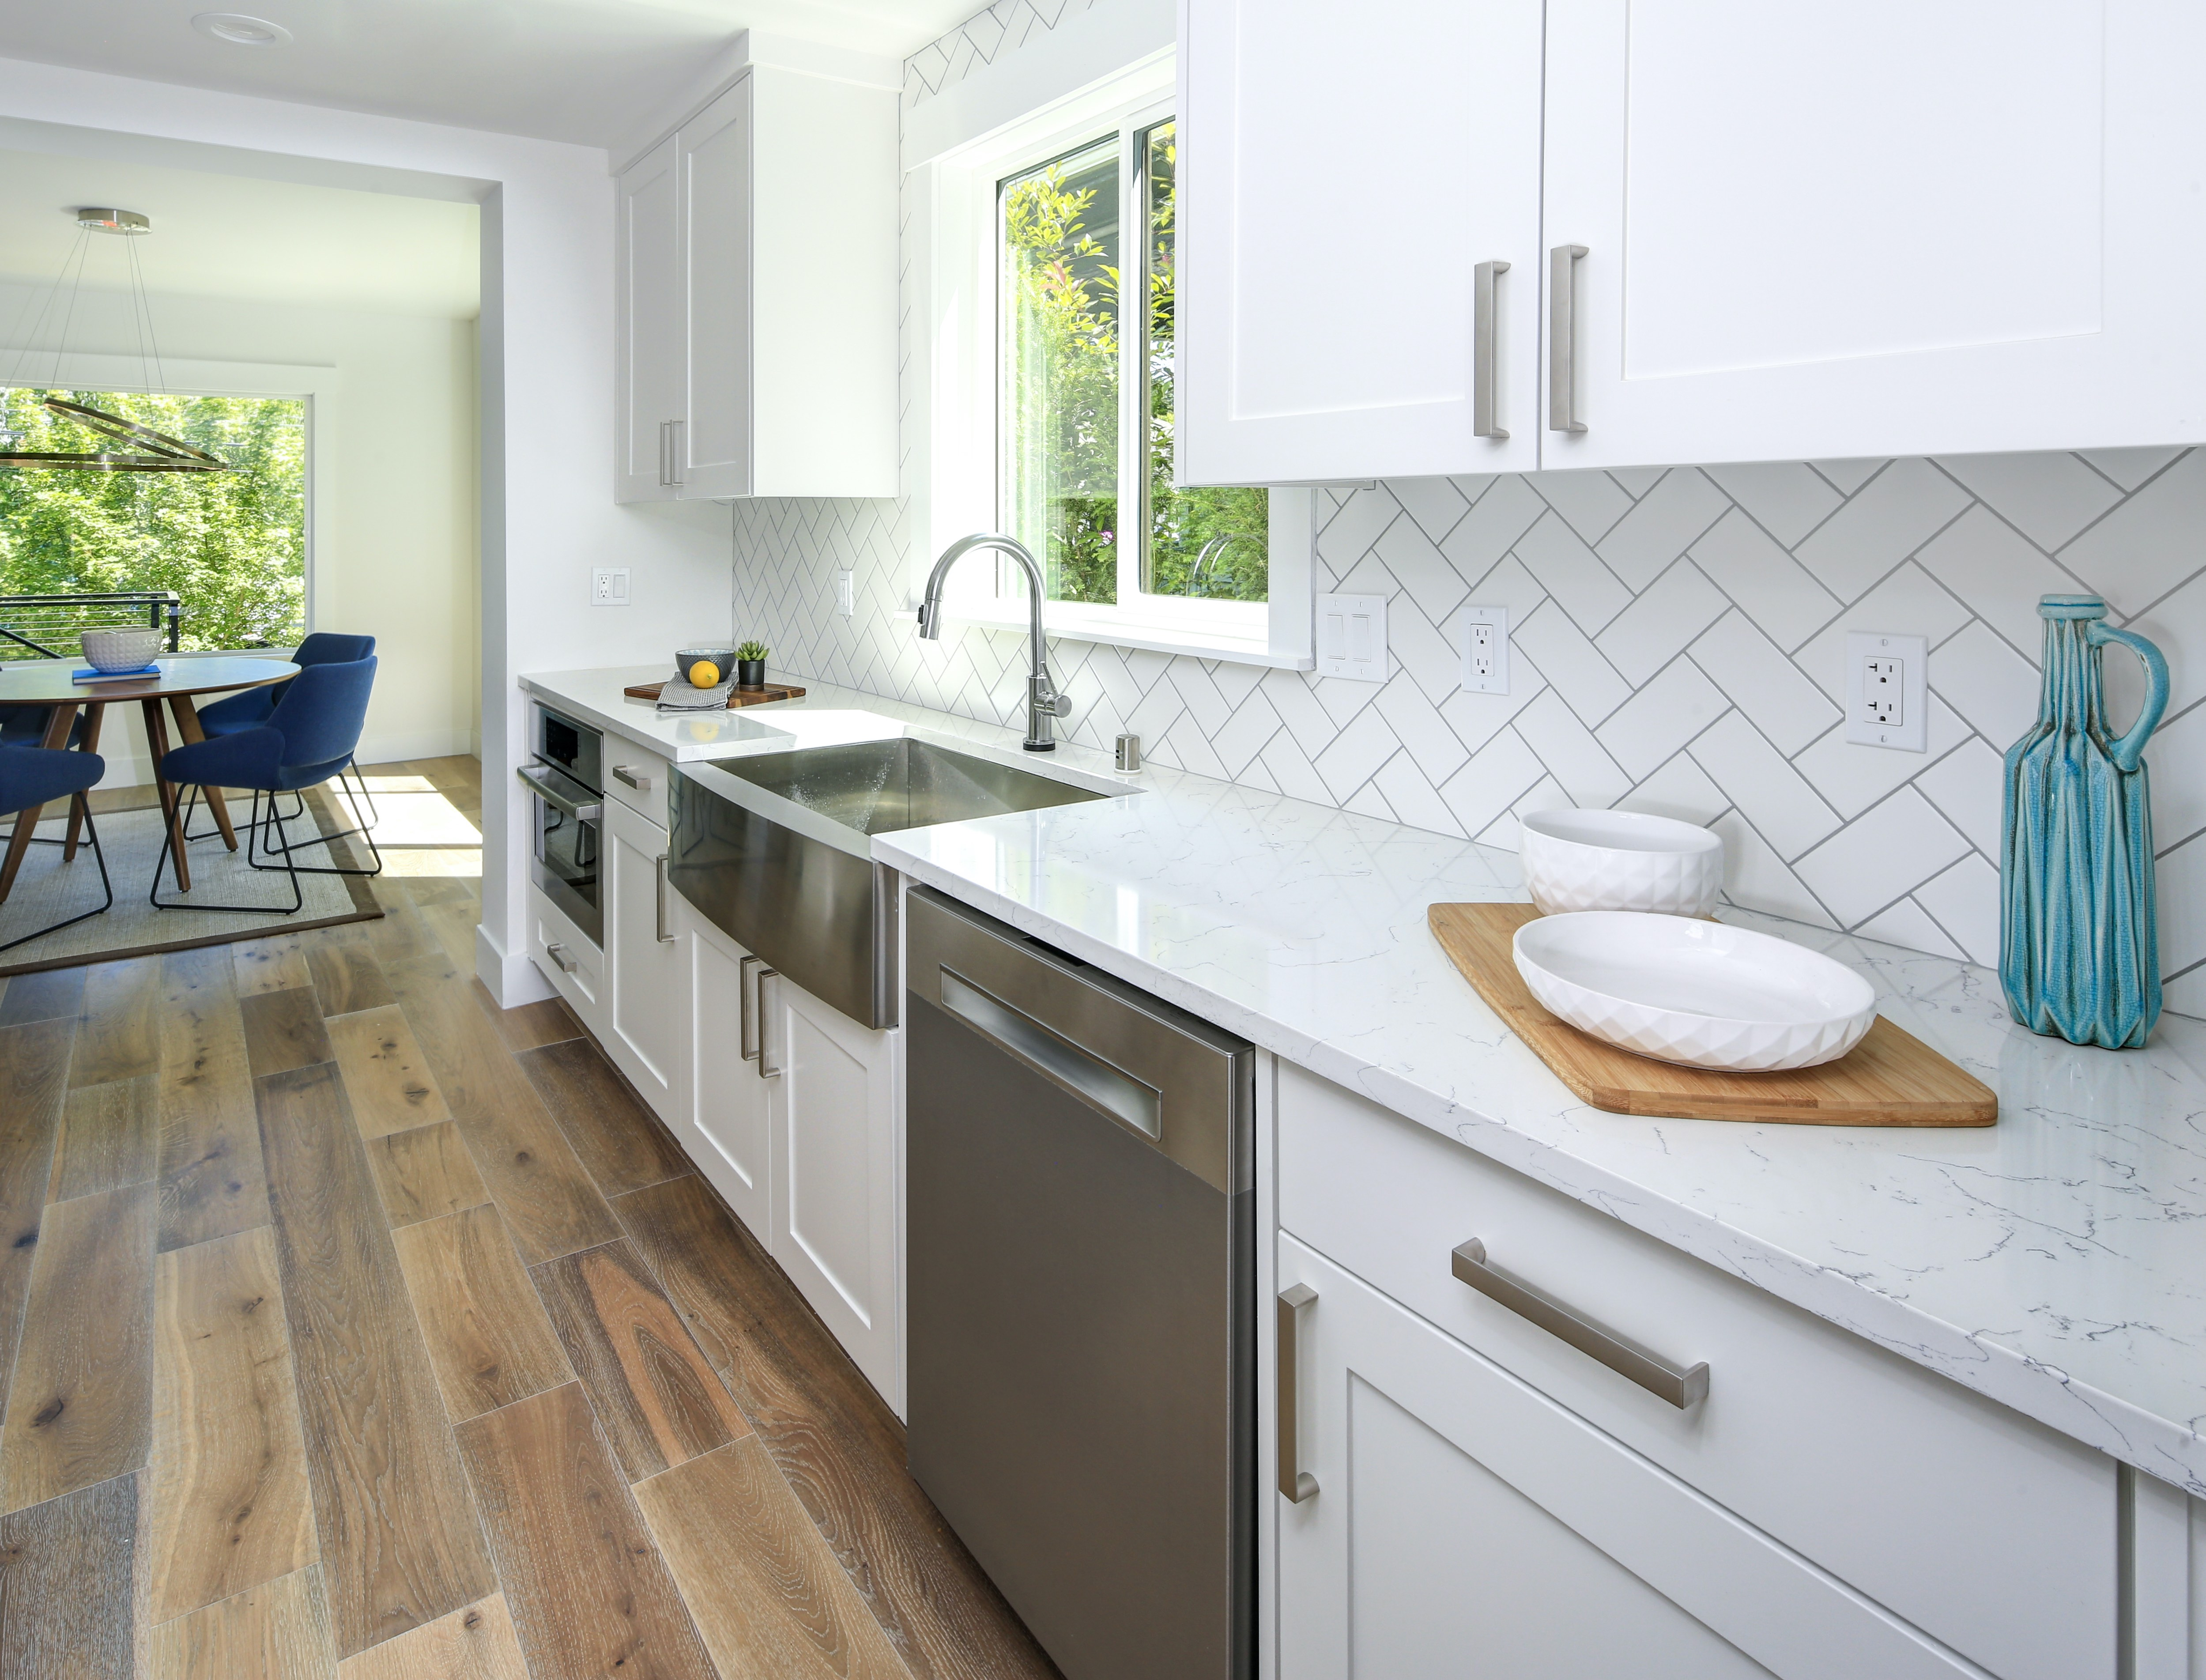 Top 4 Ways to Spruce Up Your Kitchen Cabinet Refacing ...